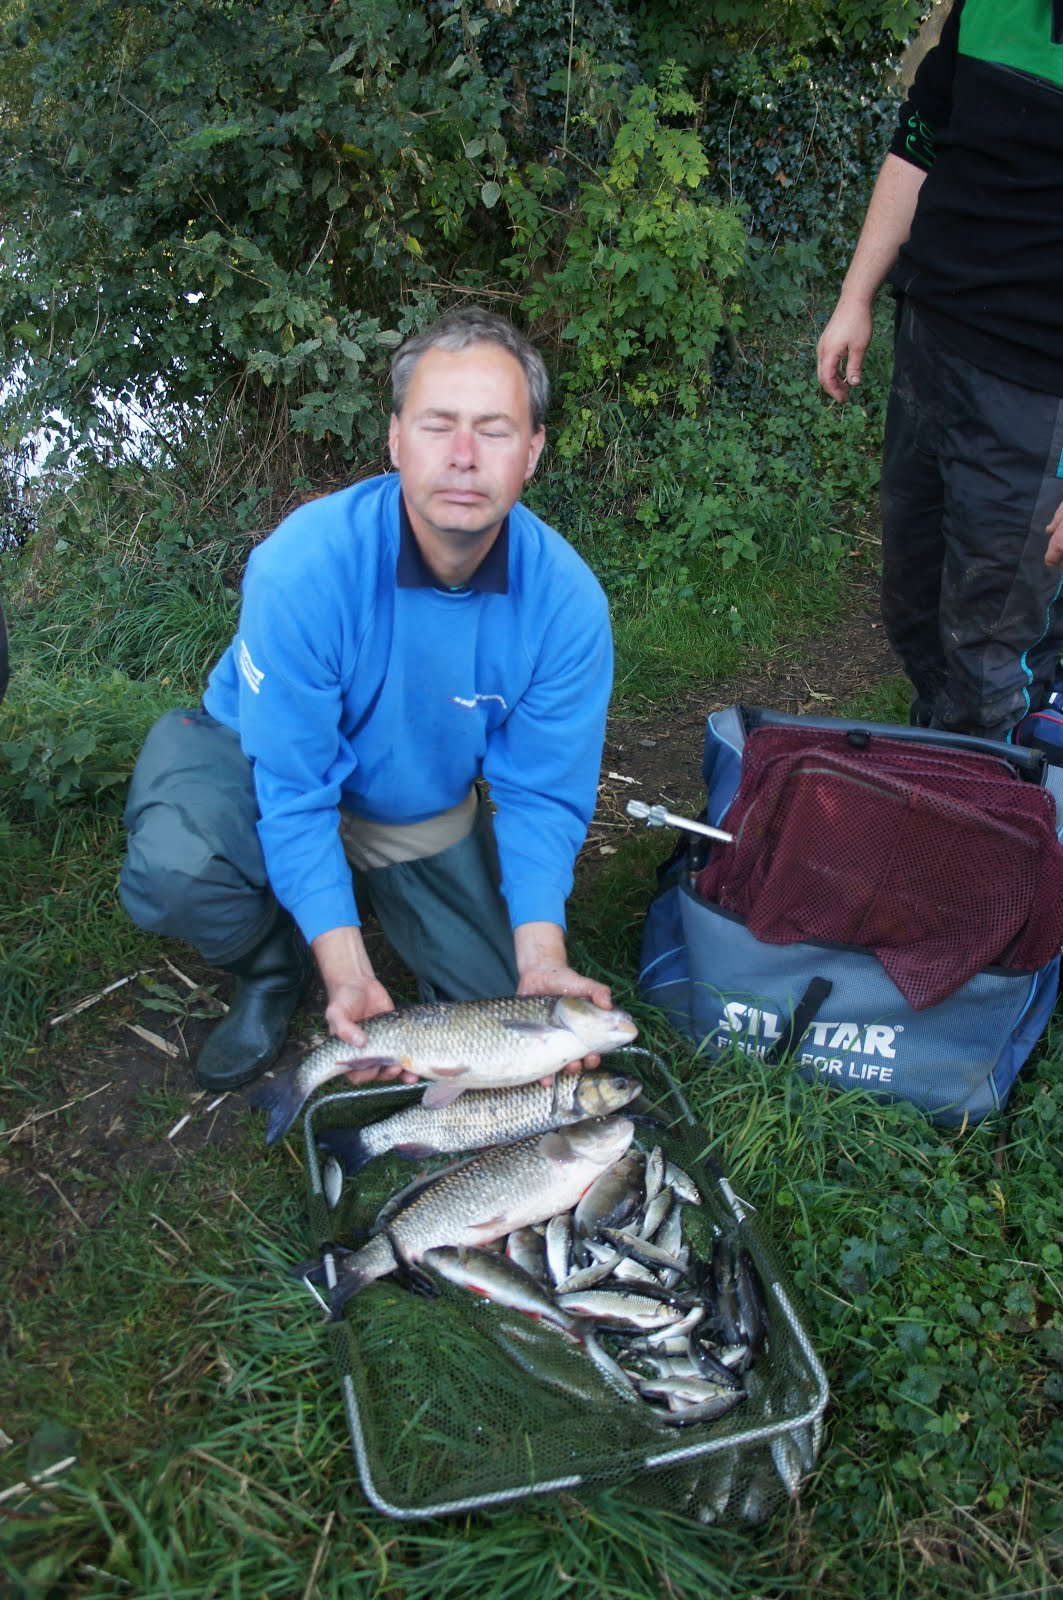 NATURAL RIVER SOAR - Bagging heaven